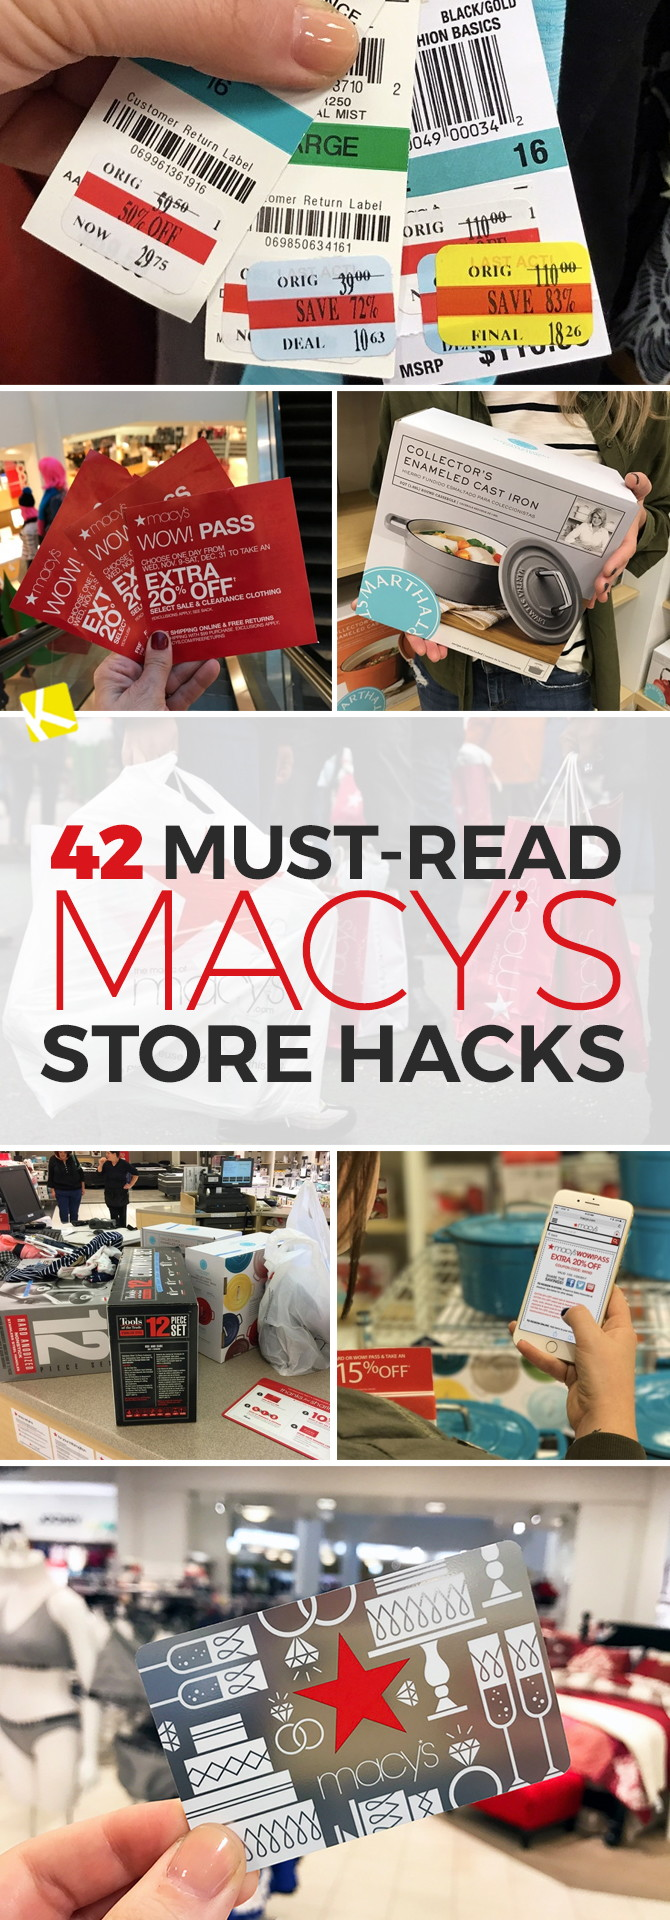 42 Must-Read Macy\u0027s Store Hacks - The Krazy Coupon Lady